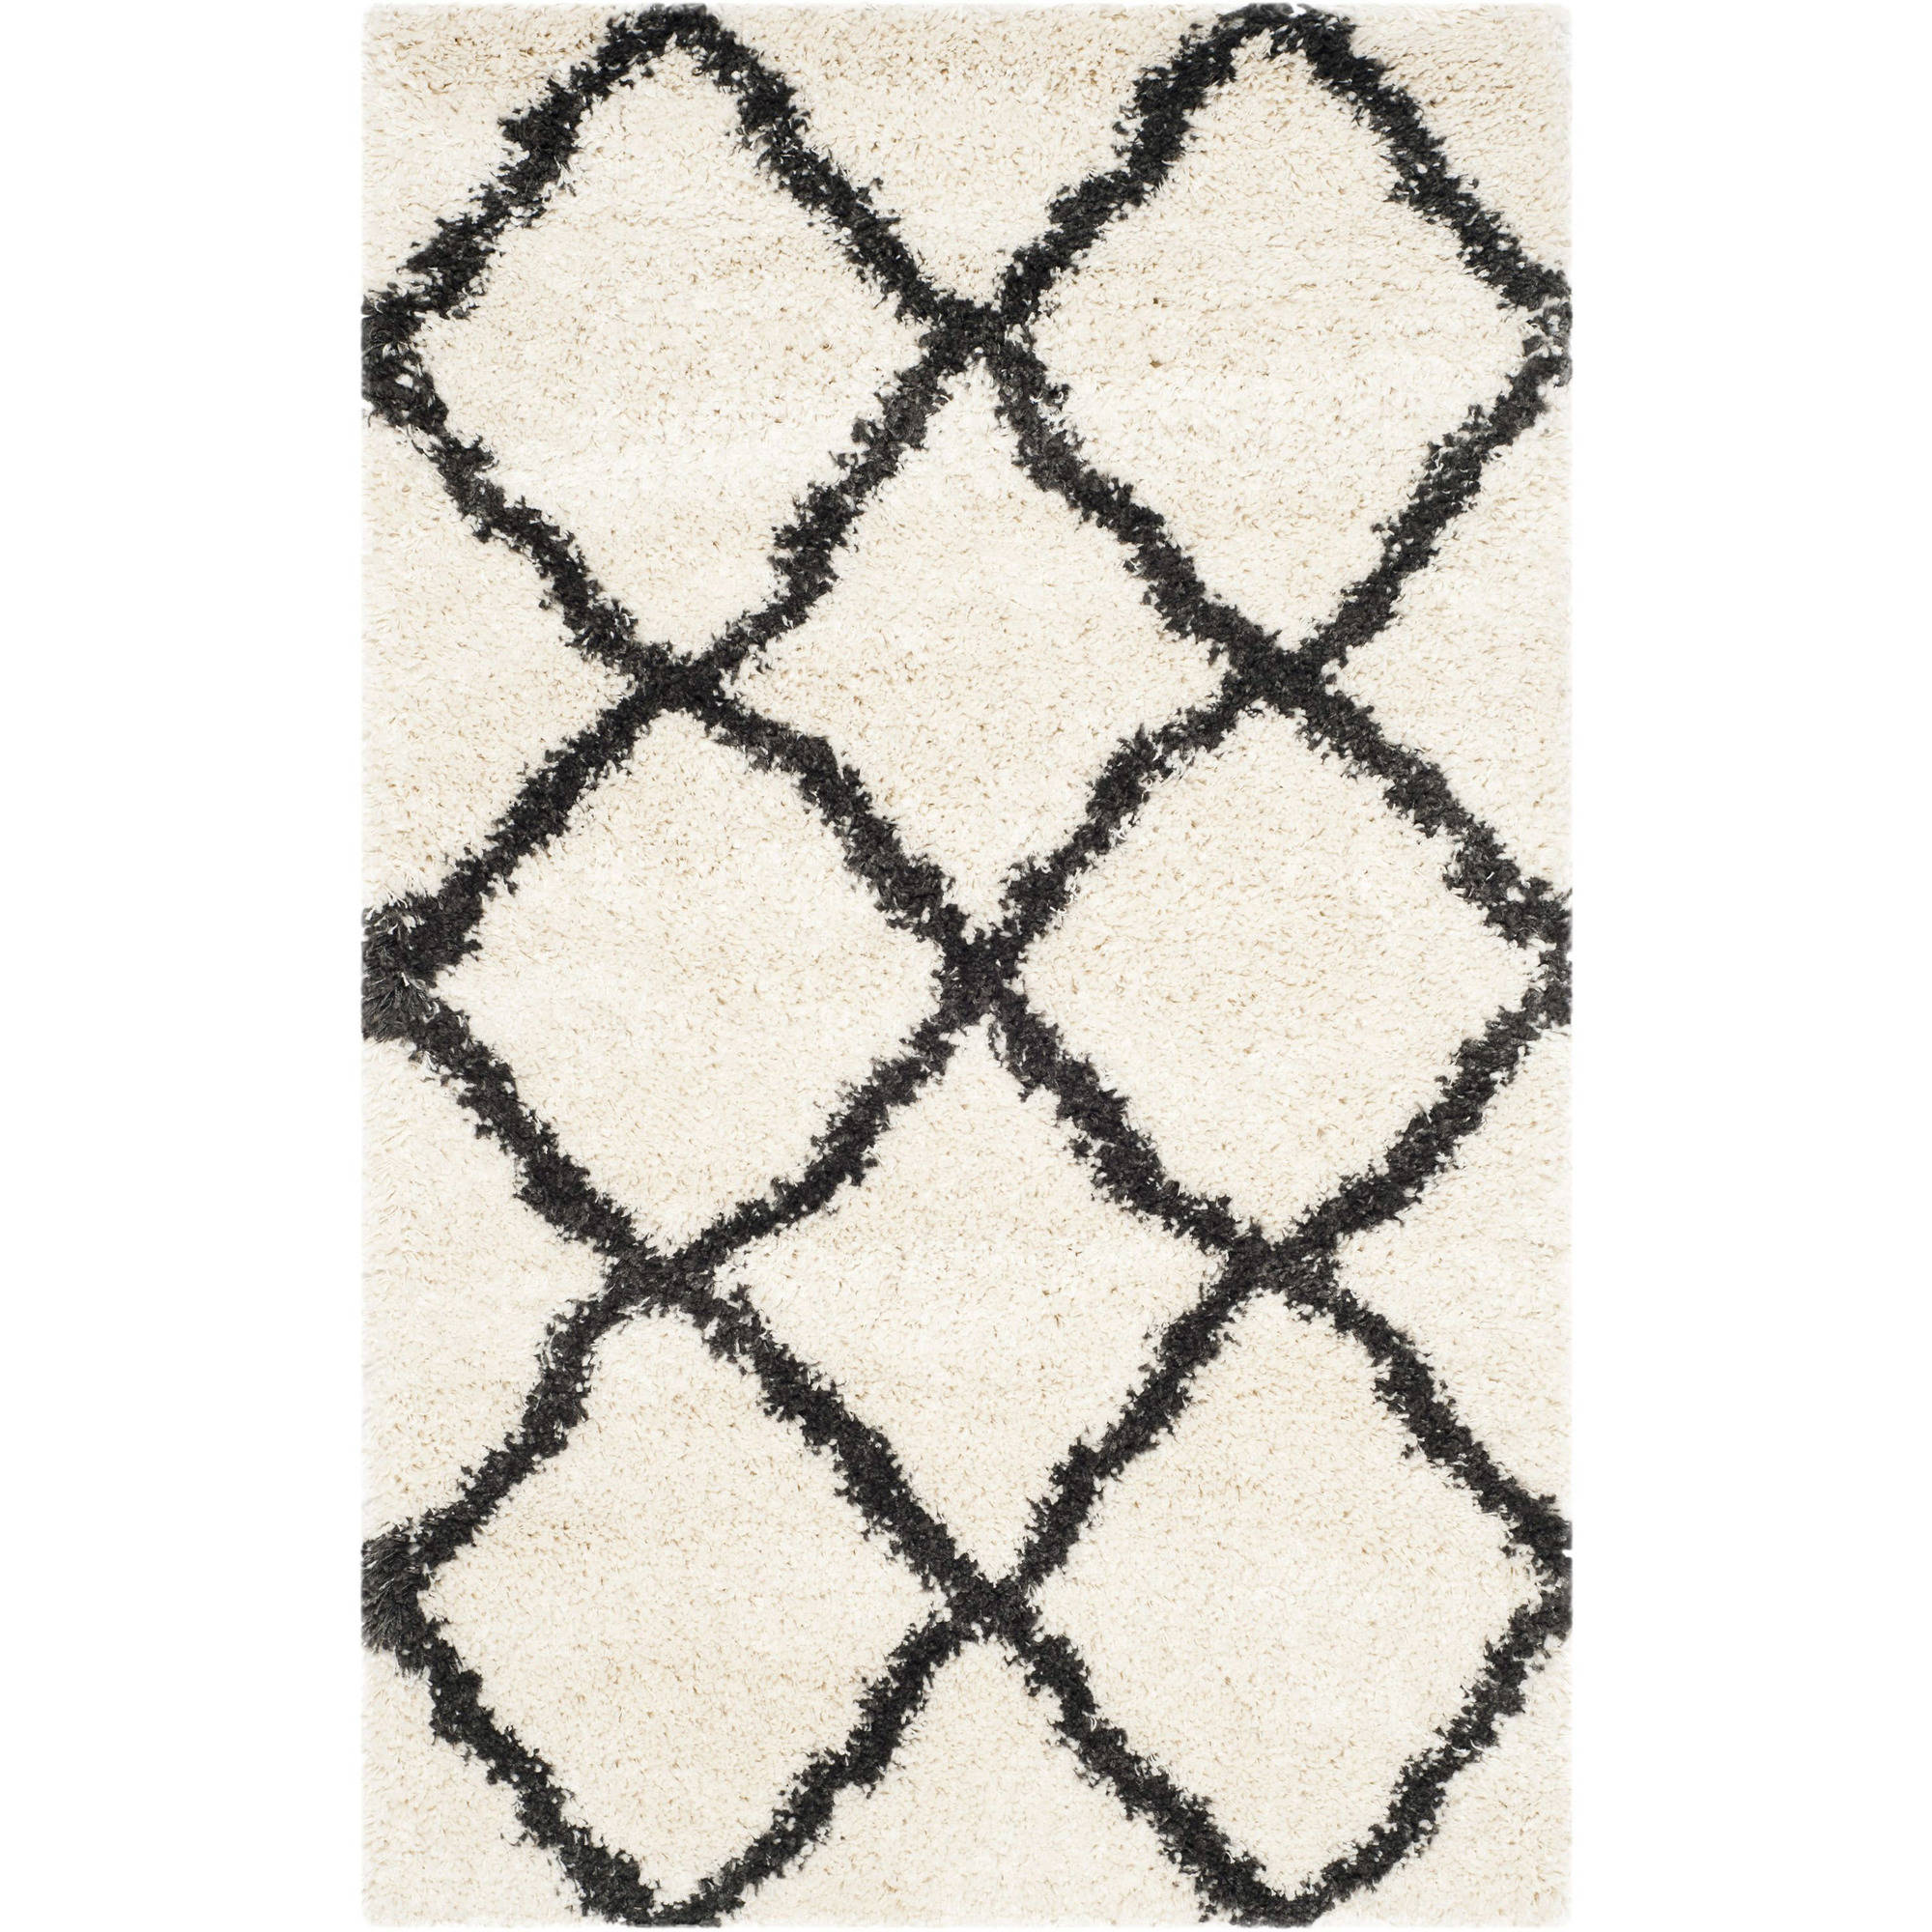 Safavieh Belize Joisse Geometric Plush Shag Area Rug or Runner by Safavieh